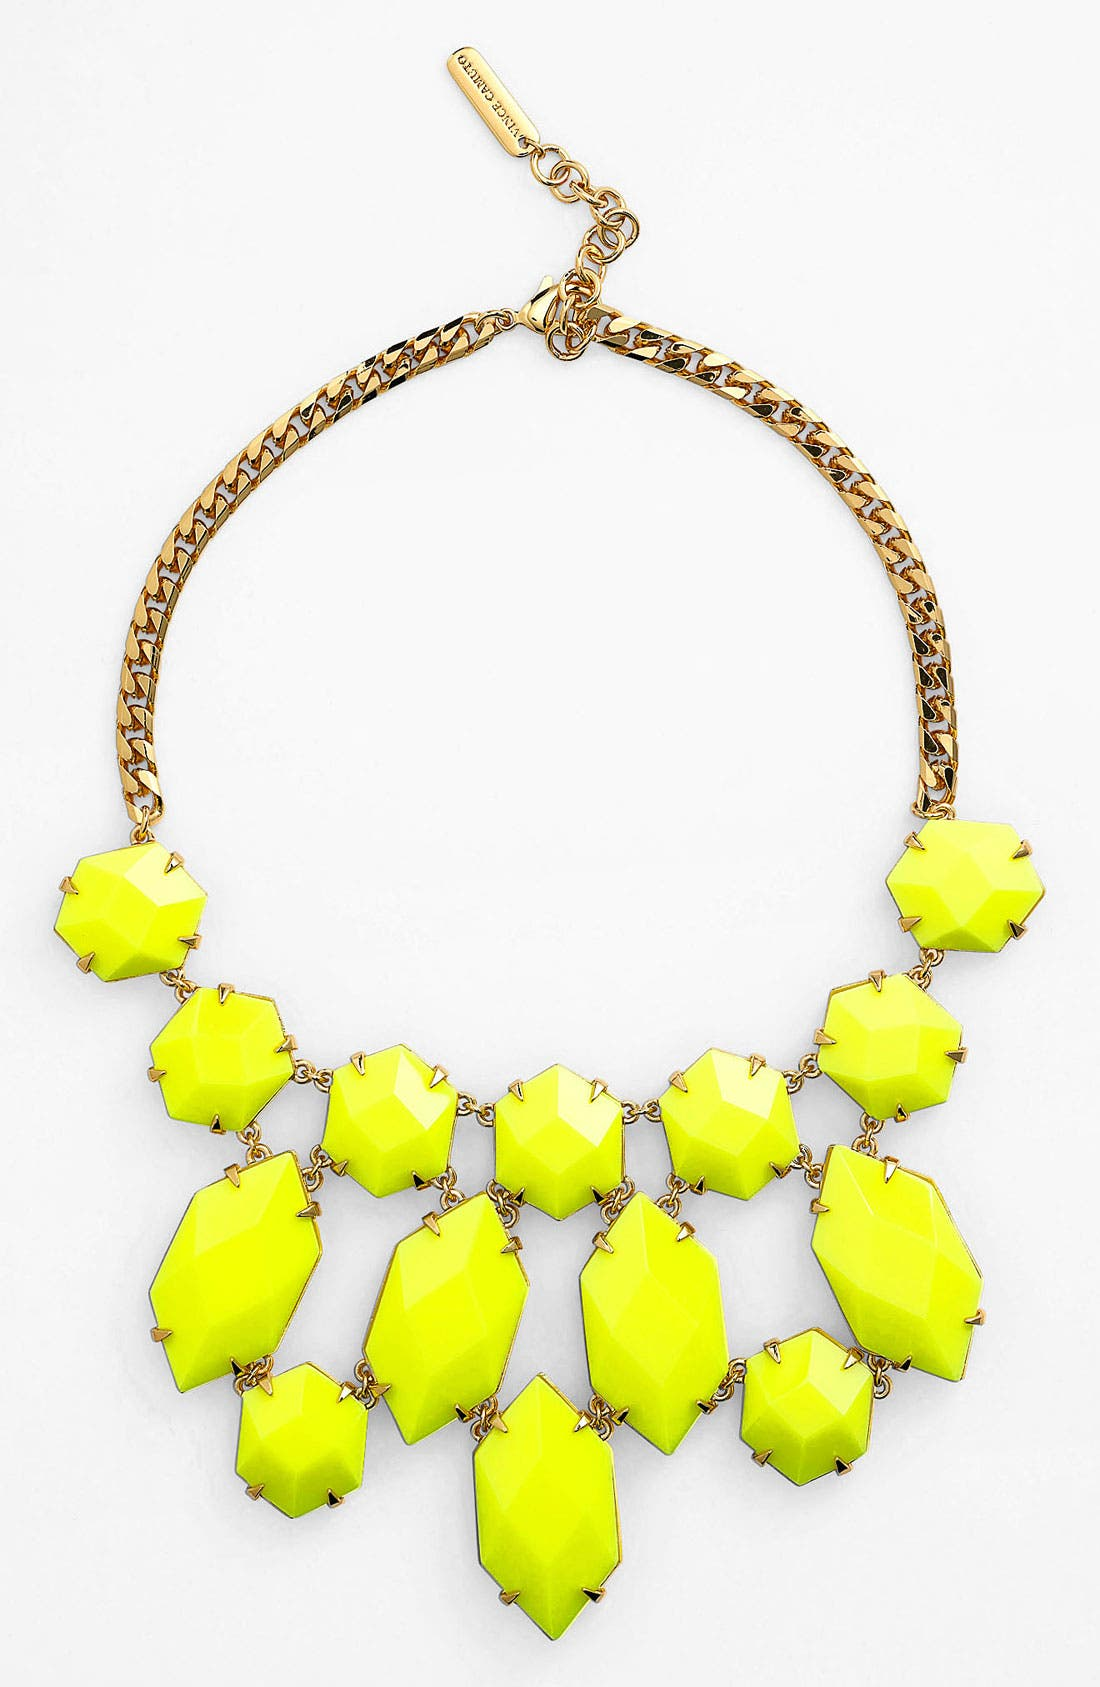 Main Image - Vince Camuto 'Bright Gems' Faceted Resin Bib Necklace